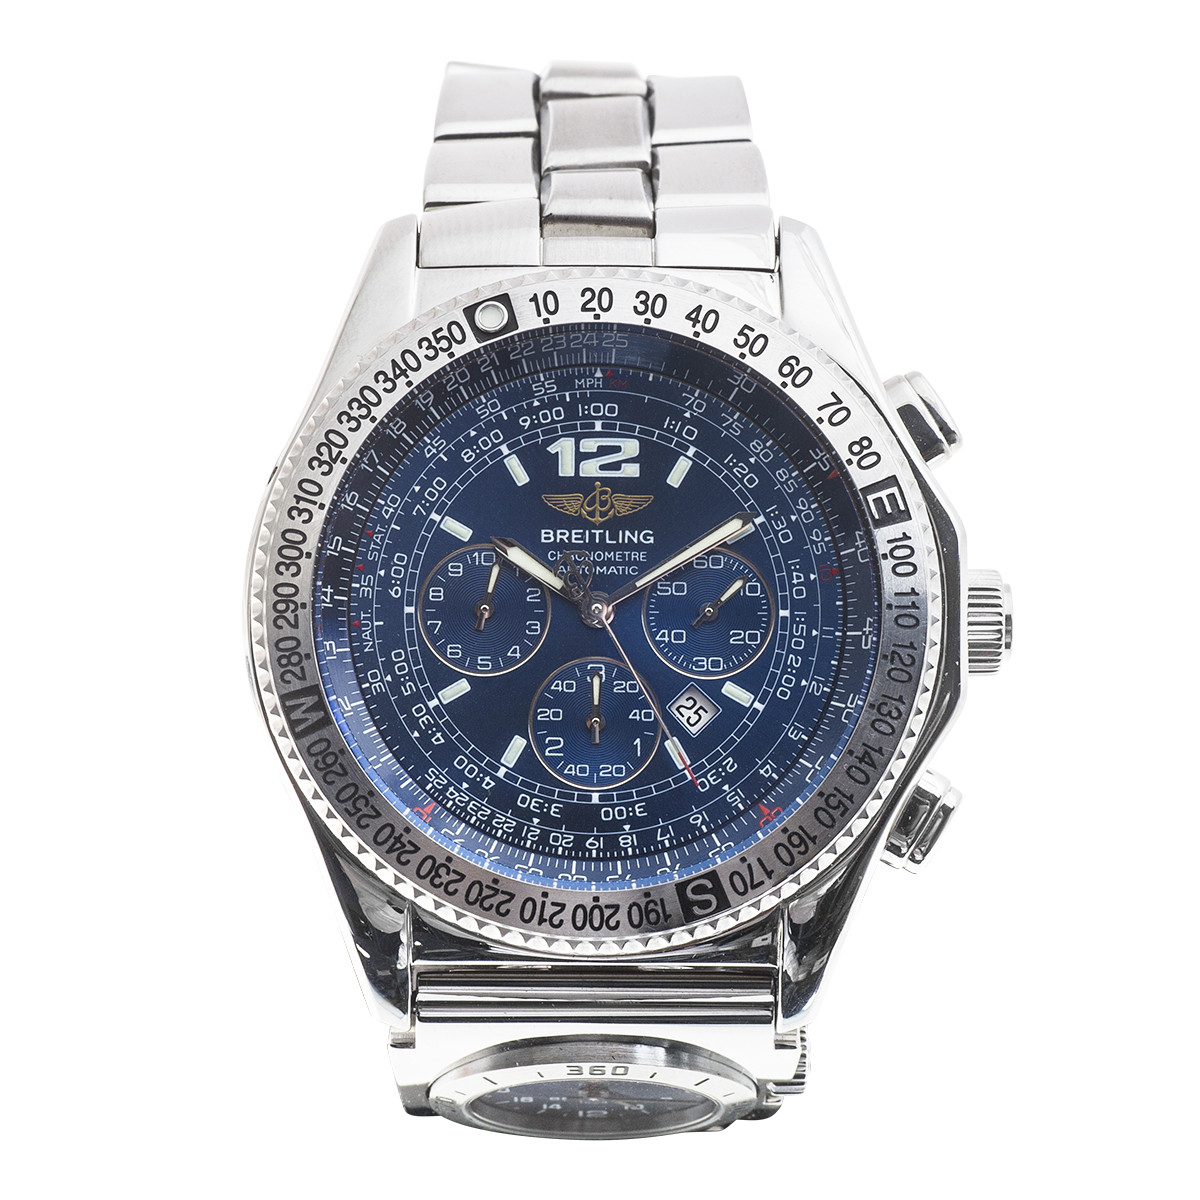 Preowned Breitling B-2 Professional Chronograph Watch